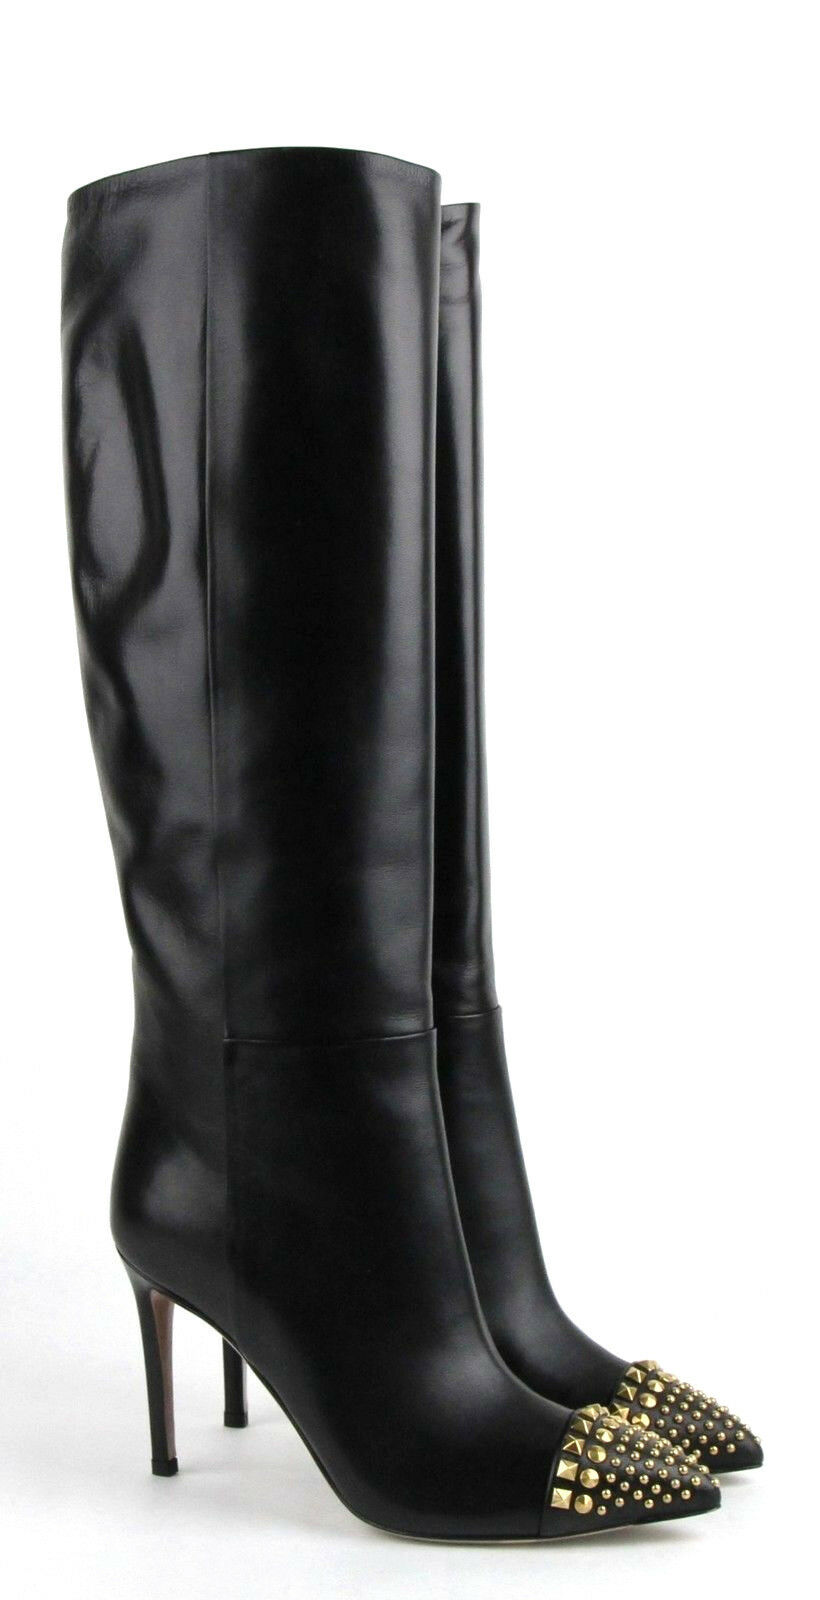 NEW AUTHENTIC GUCCI MALAGA KID KNEE HIGH BLACK LEATHER STUDDED BOOTS 9.5